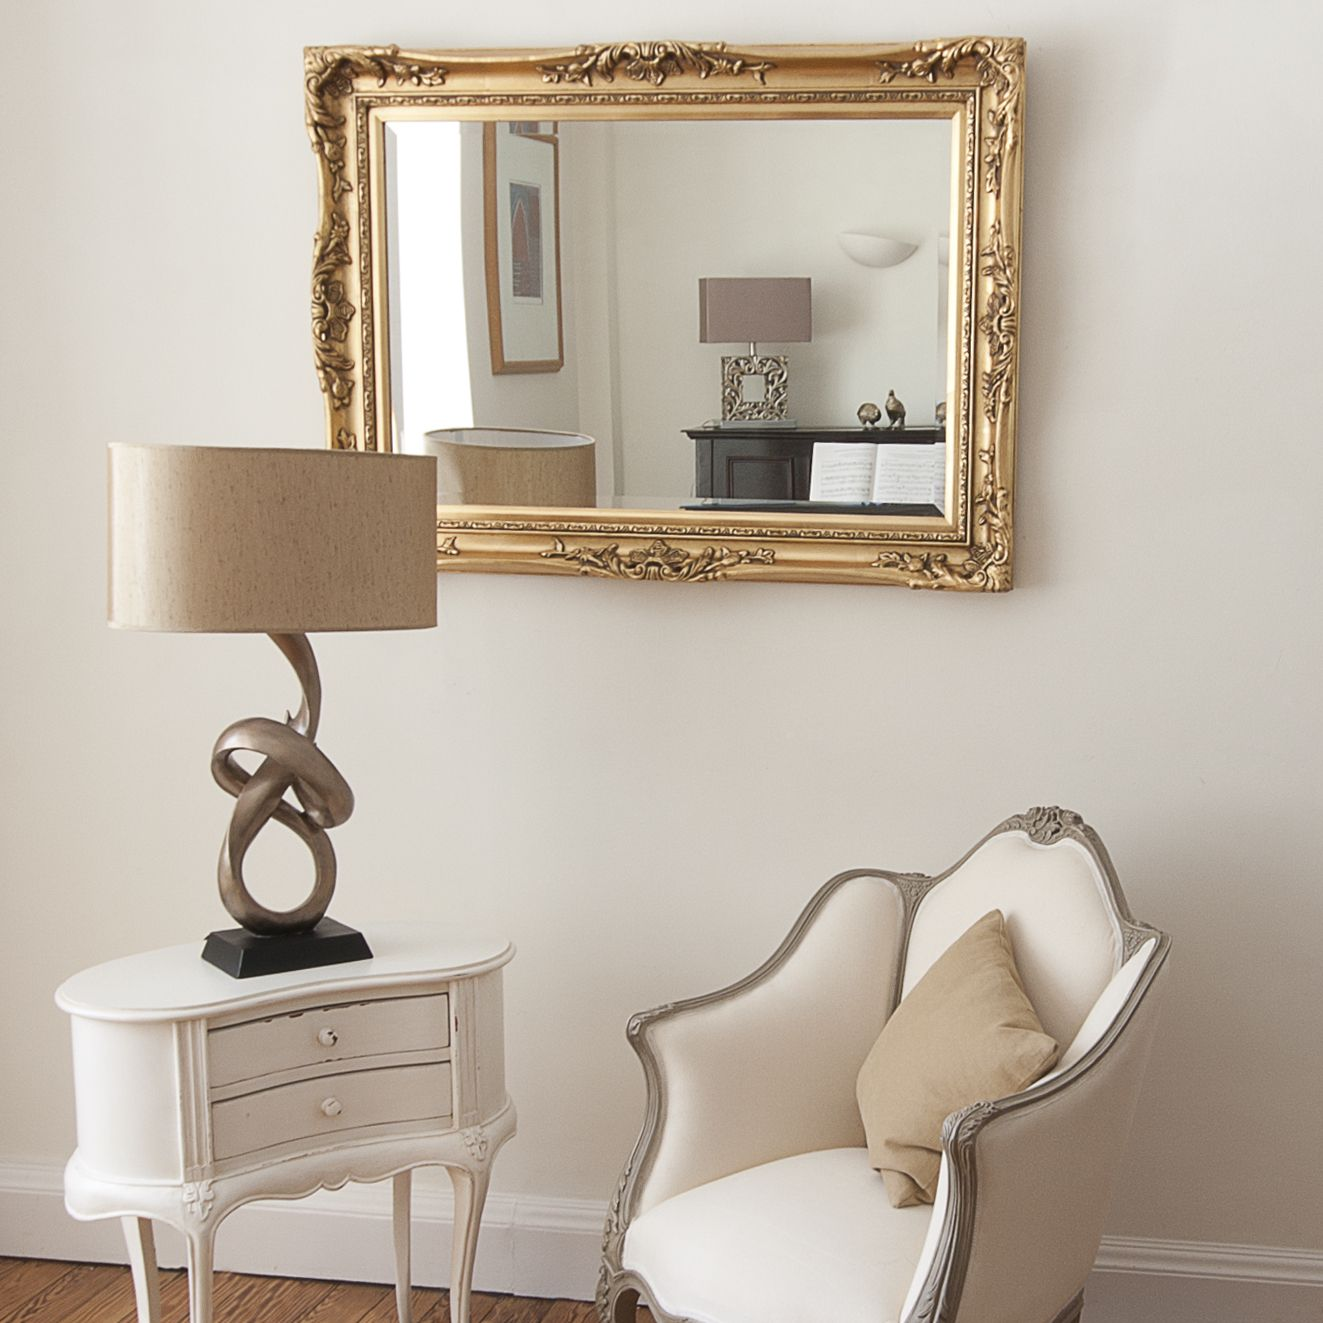 Elegant Gold Mirror | Living room mirrors, Vintage gold ...